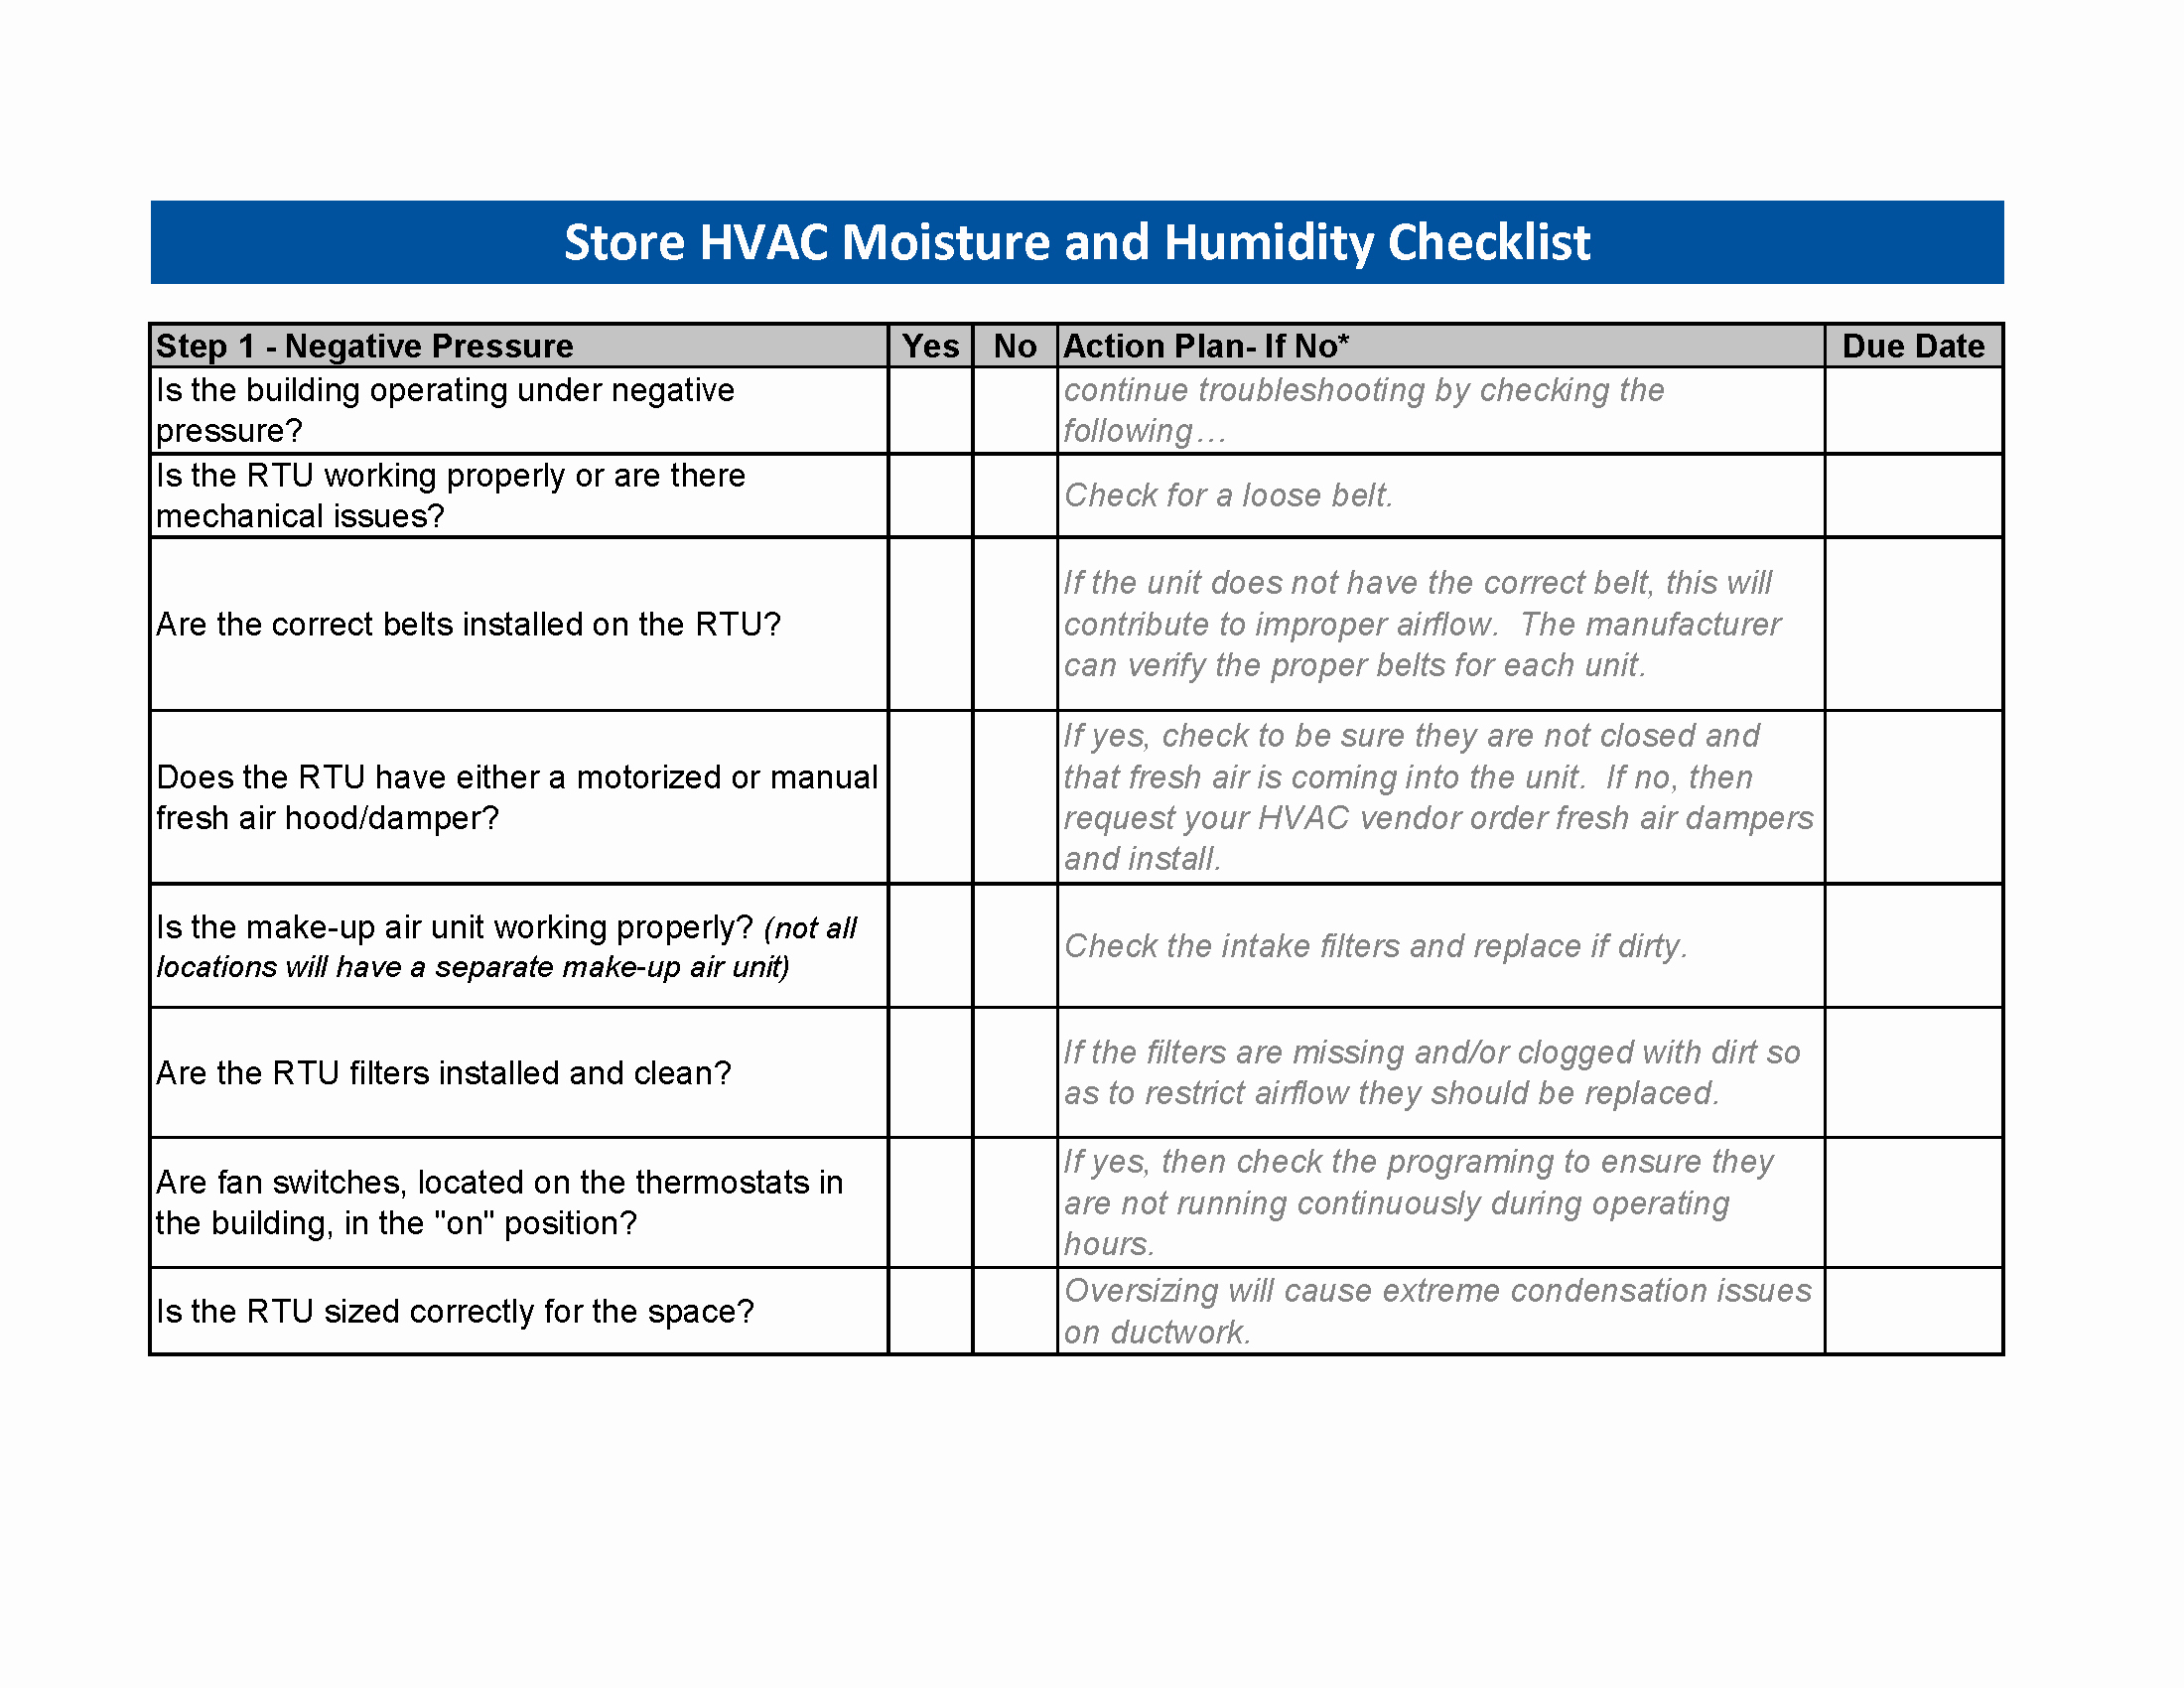 Retail Store Checklist Template Unique Prsm's Moisture and Humidity Checklist Helps Retailers Prevent Expensive Maintenance issues